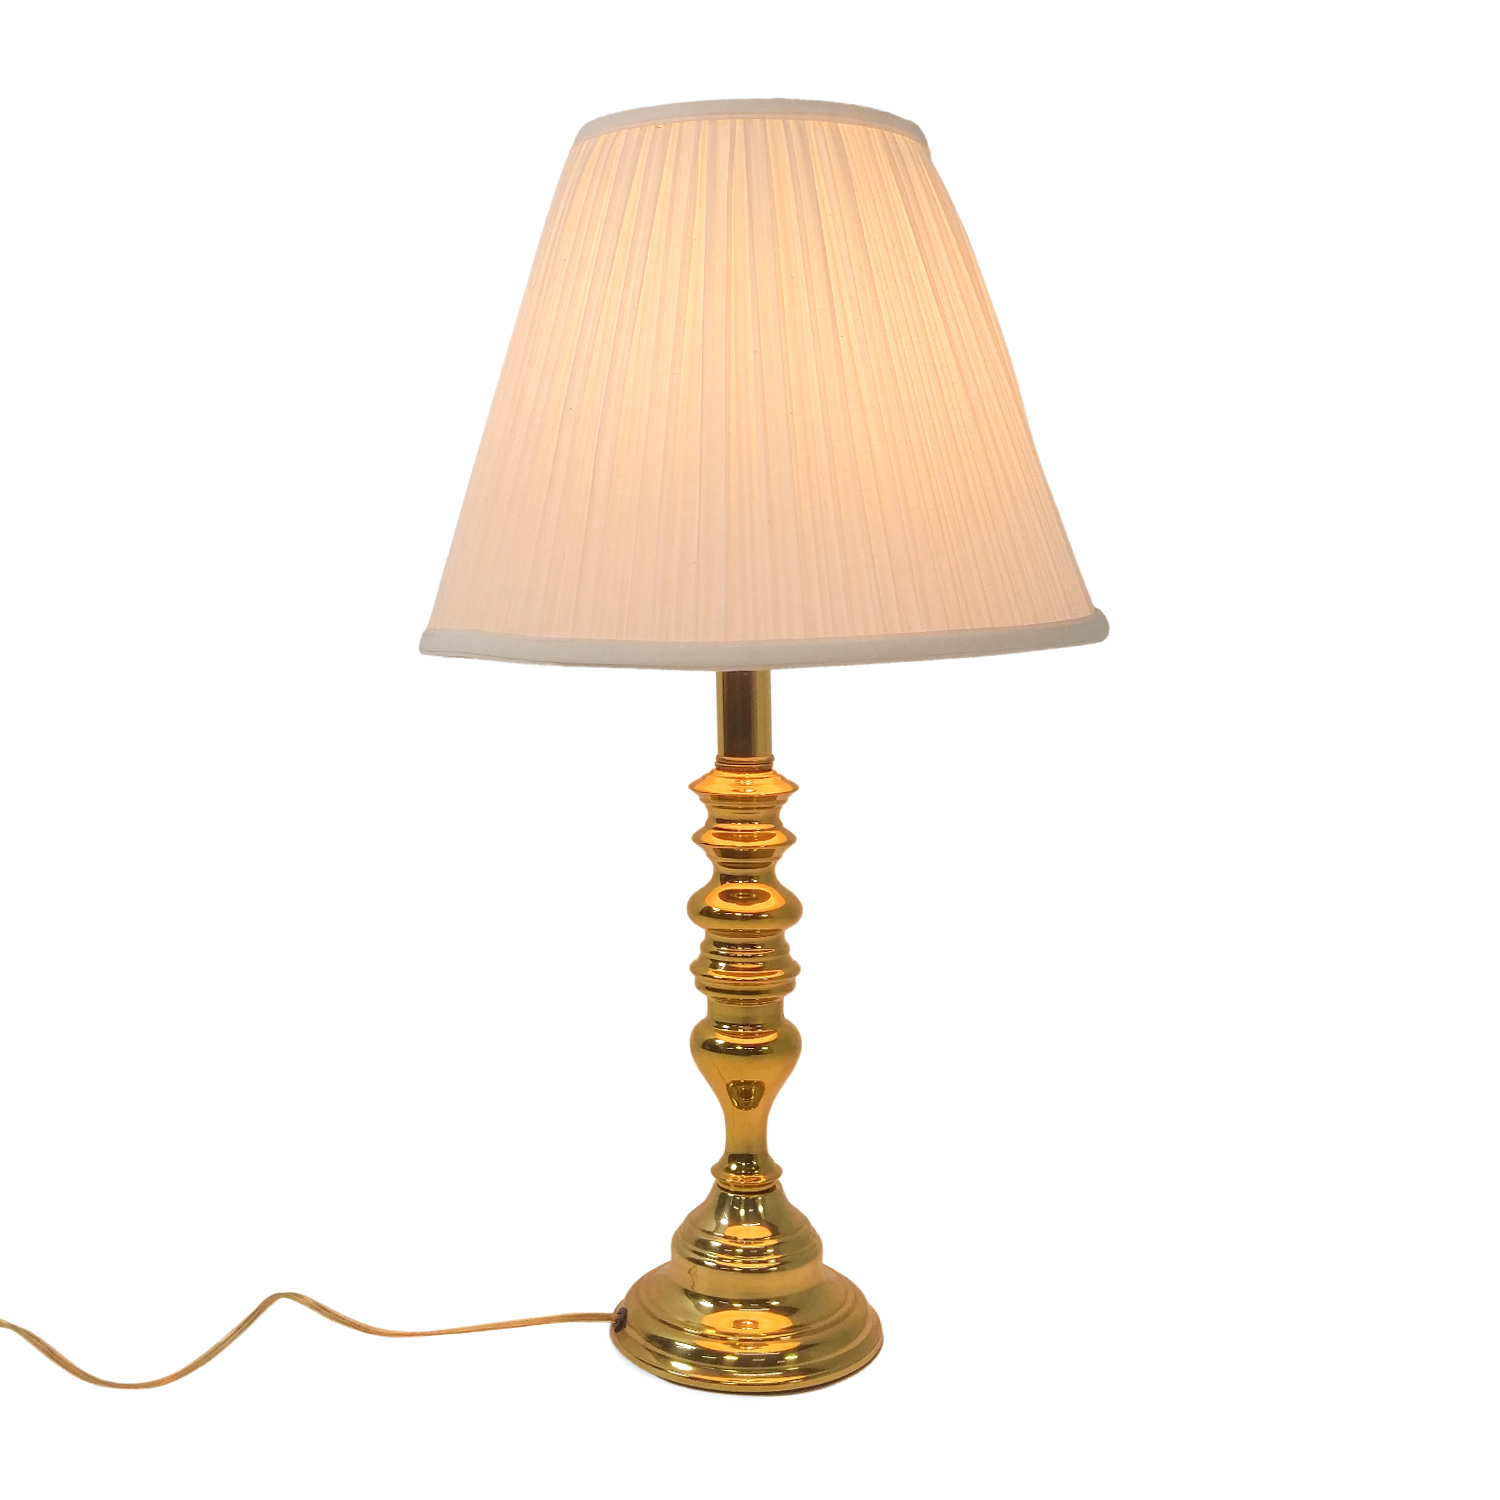 Pair of Table Lamps dimensions